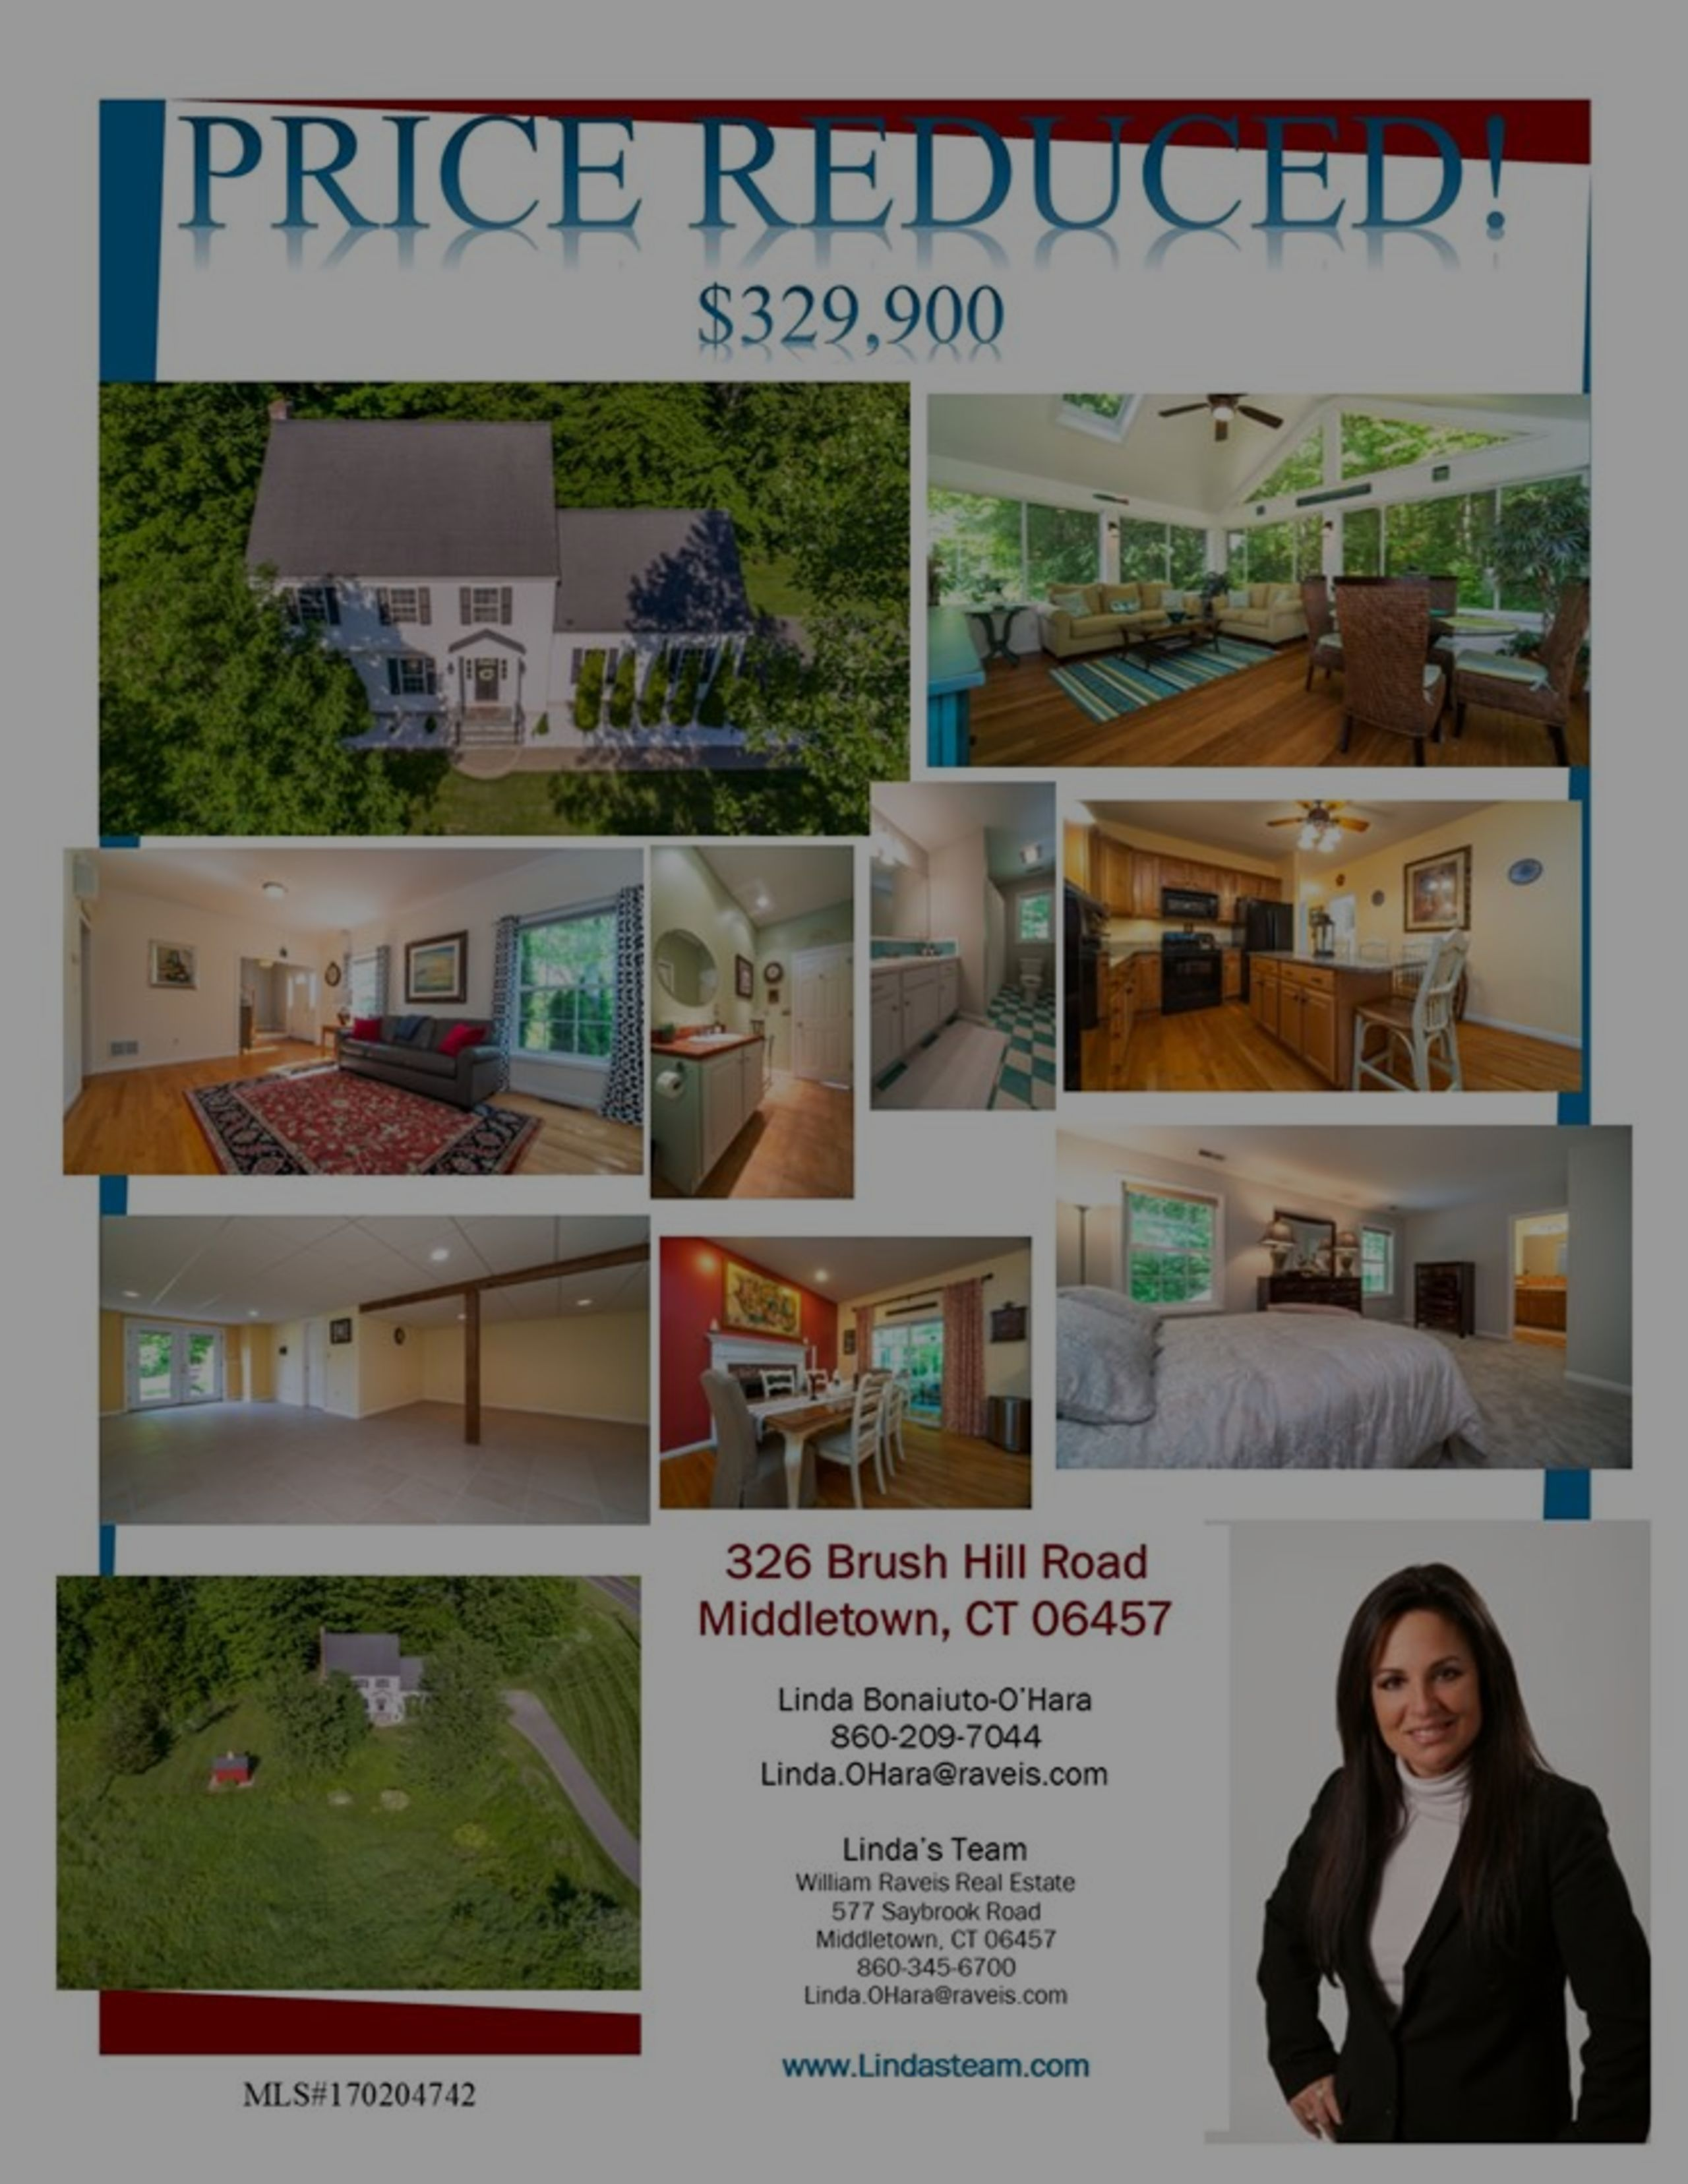 *PRICE REDUCED* 326 Brush Hill Road Middletown, CT 06457